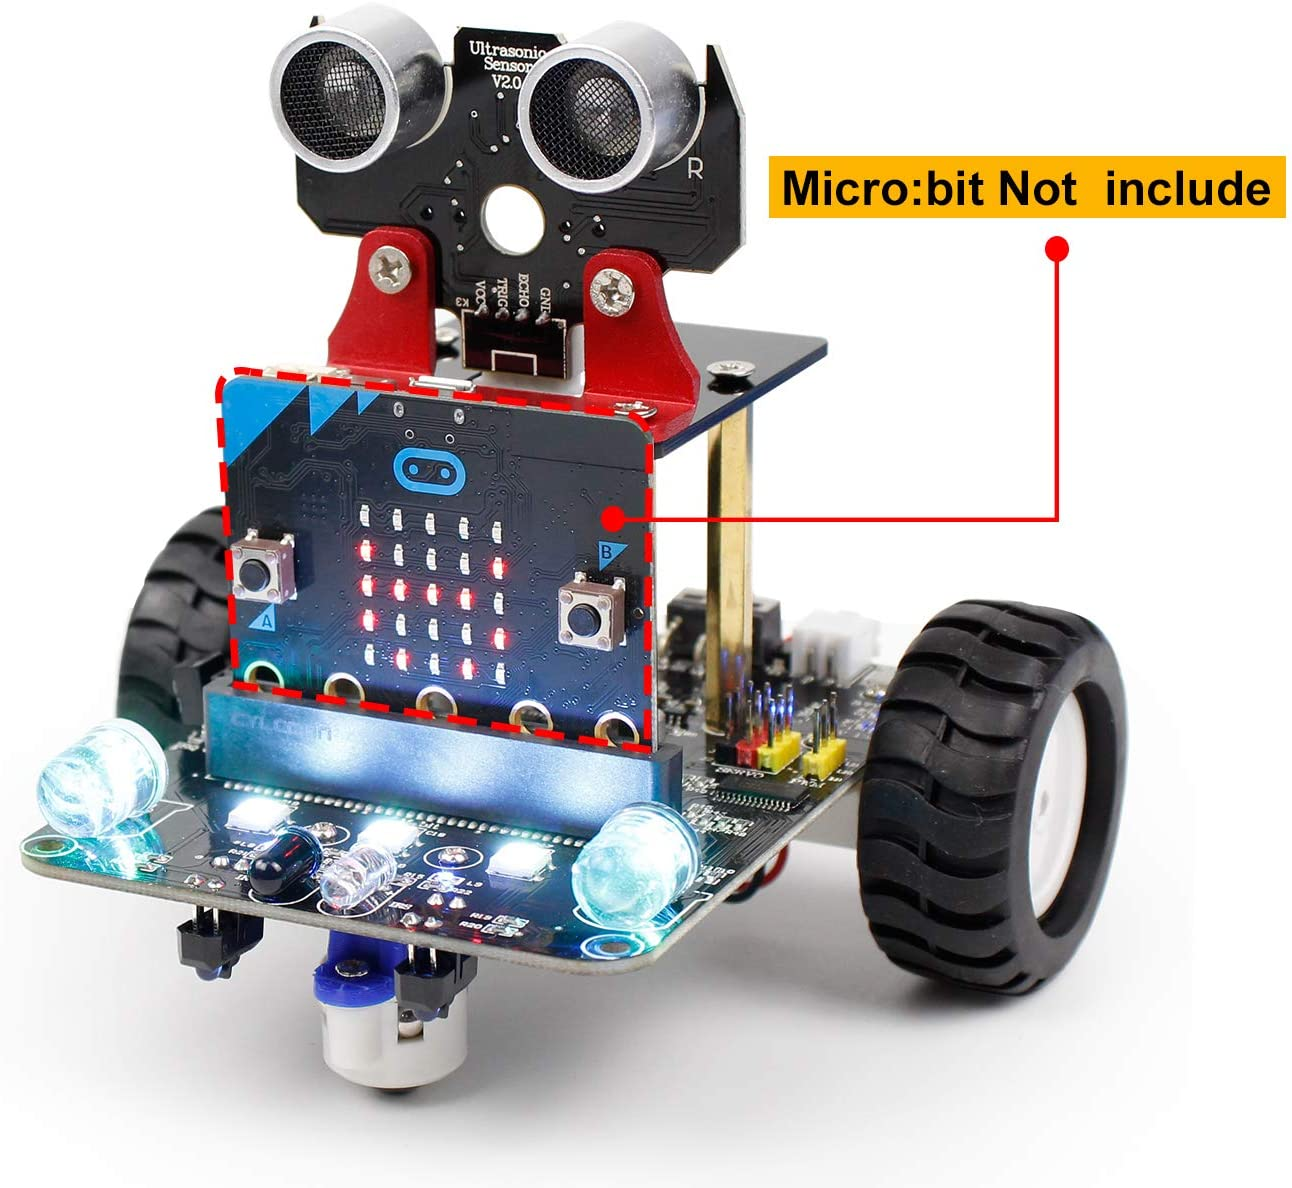 Yahboom BBC Micro:bit Coding Robot STEM Education Kit for Kids to Programmable DIY Toy Car with Tutorial for 10+ (Micro:bit NOT Include)